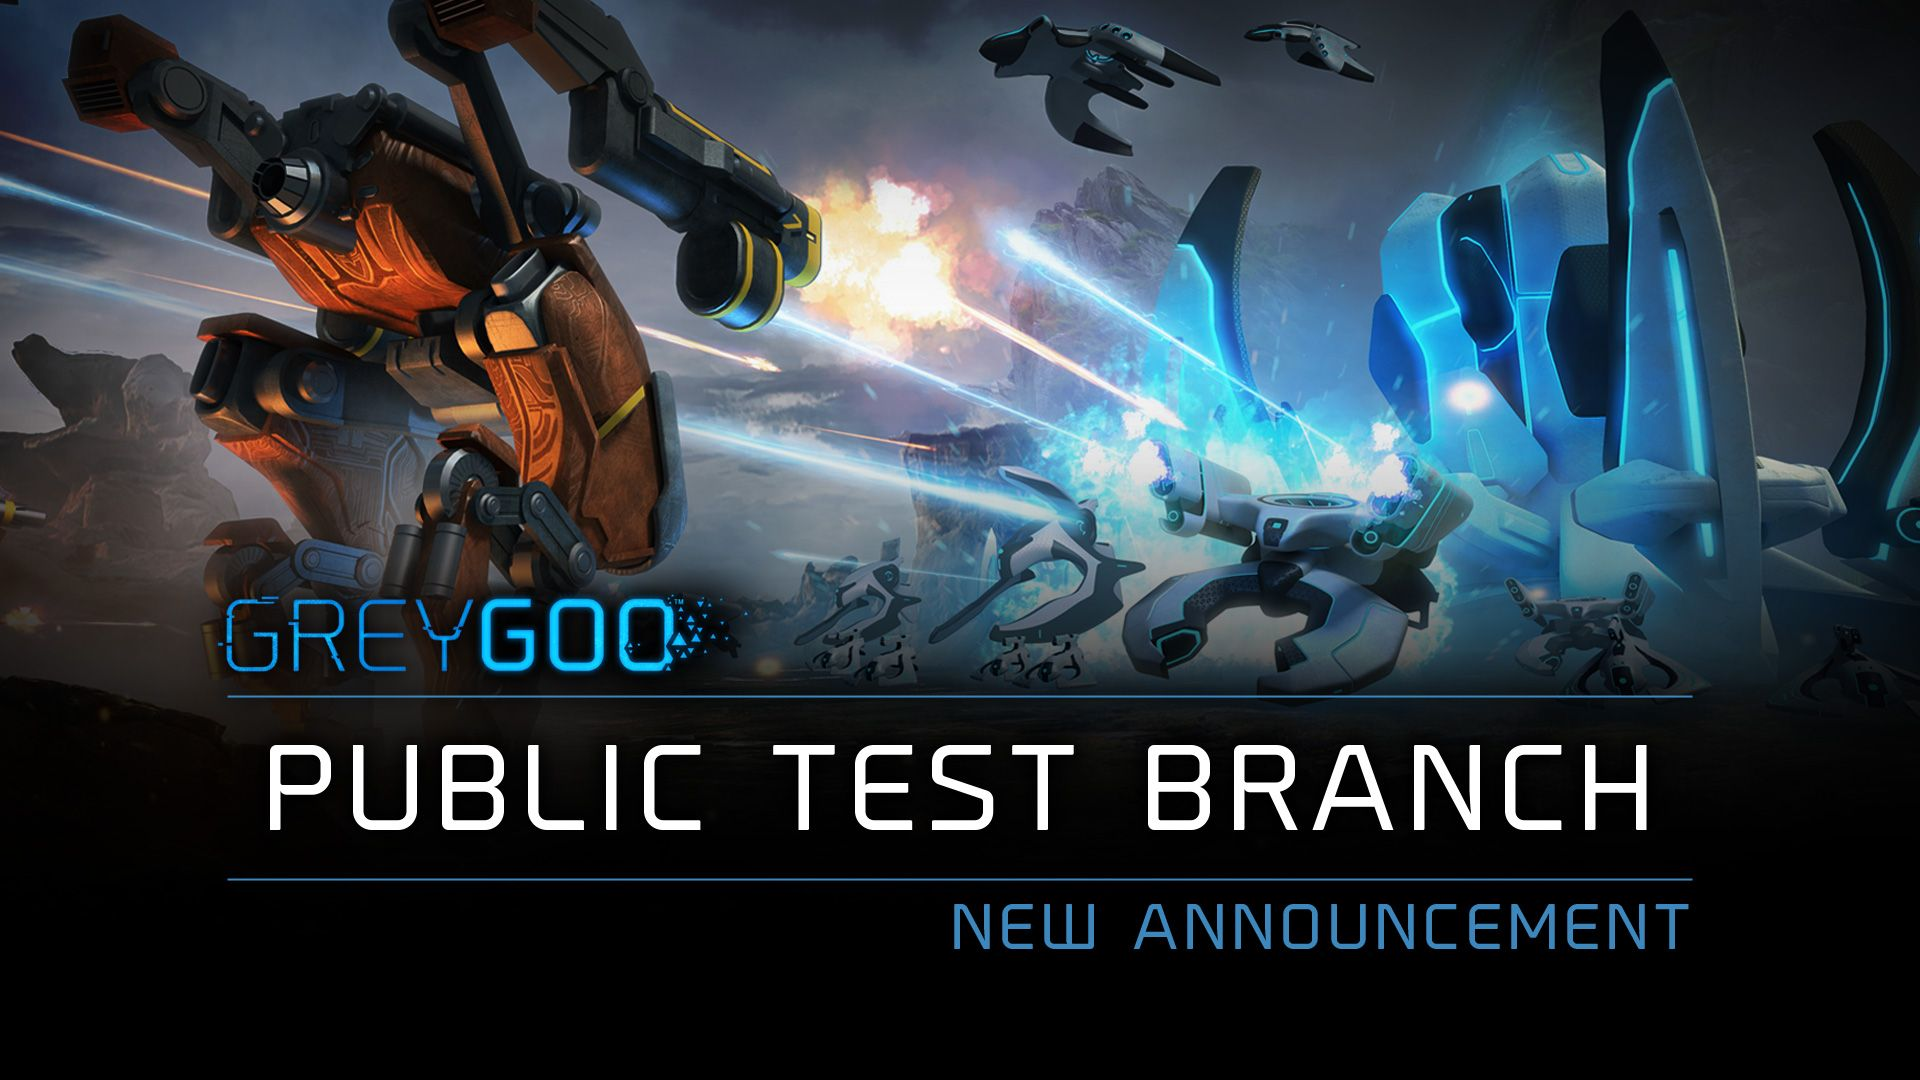 Private Test Branch Announcement